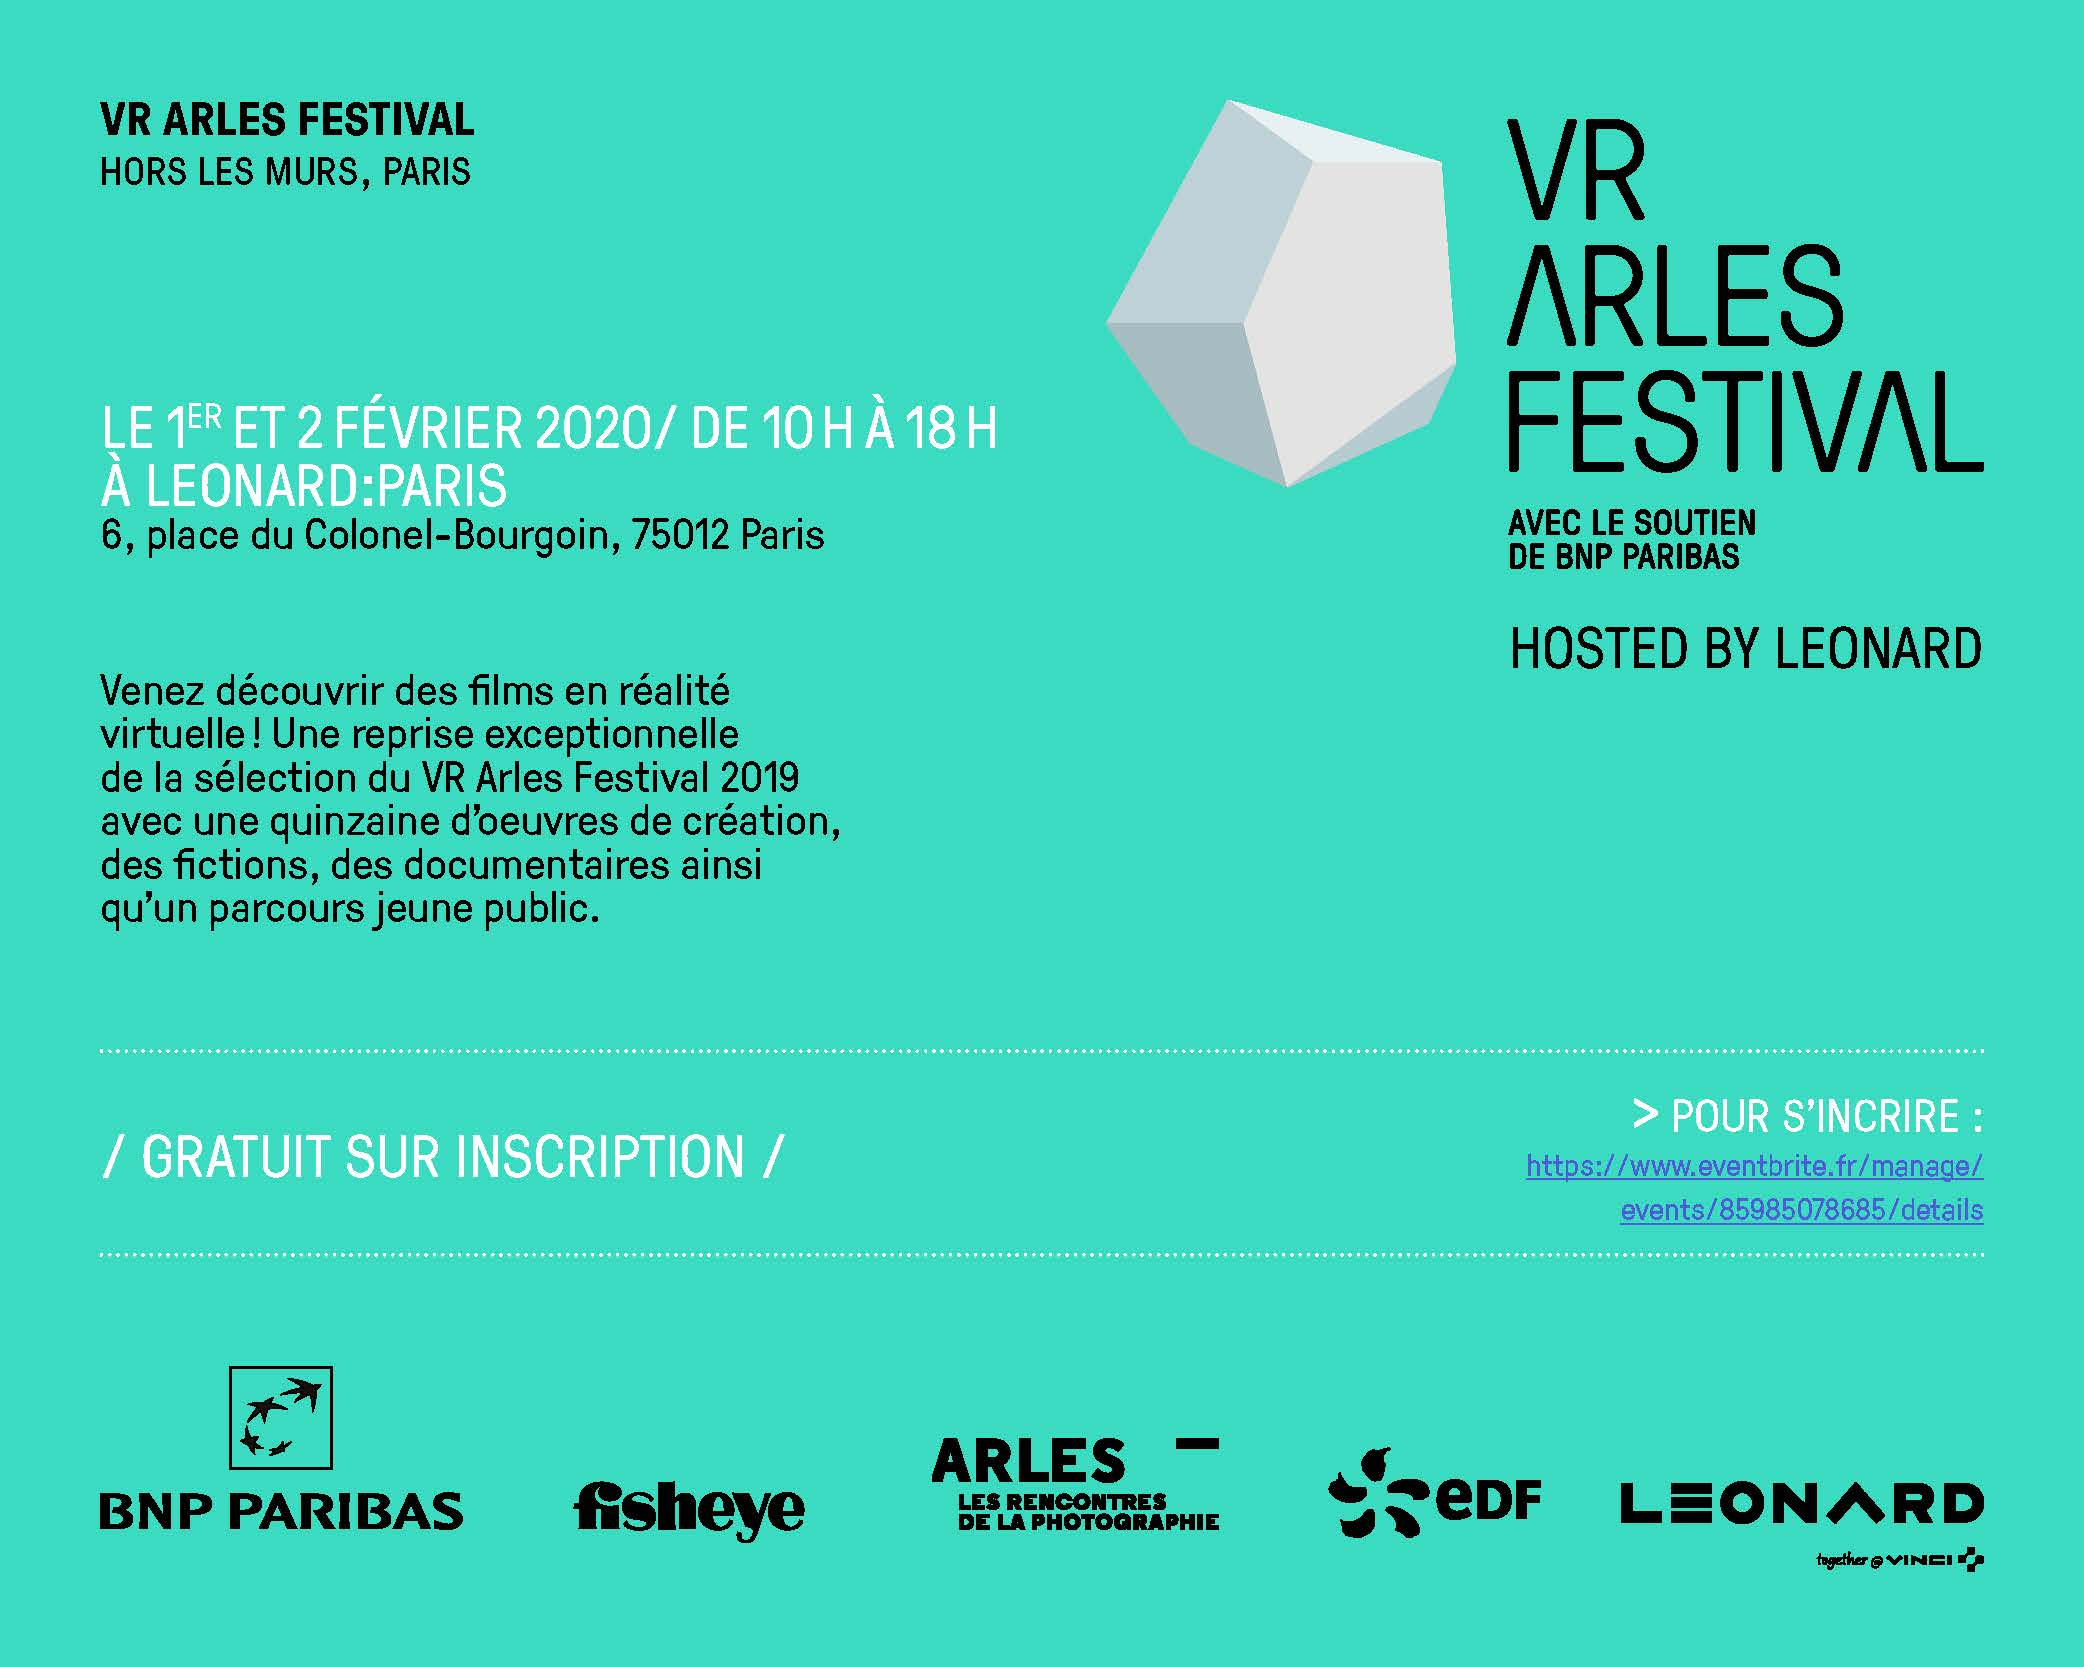 VR Arles Festival: discover the best in virtual reality with Leonard